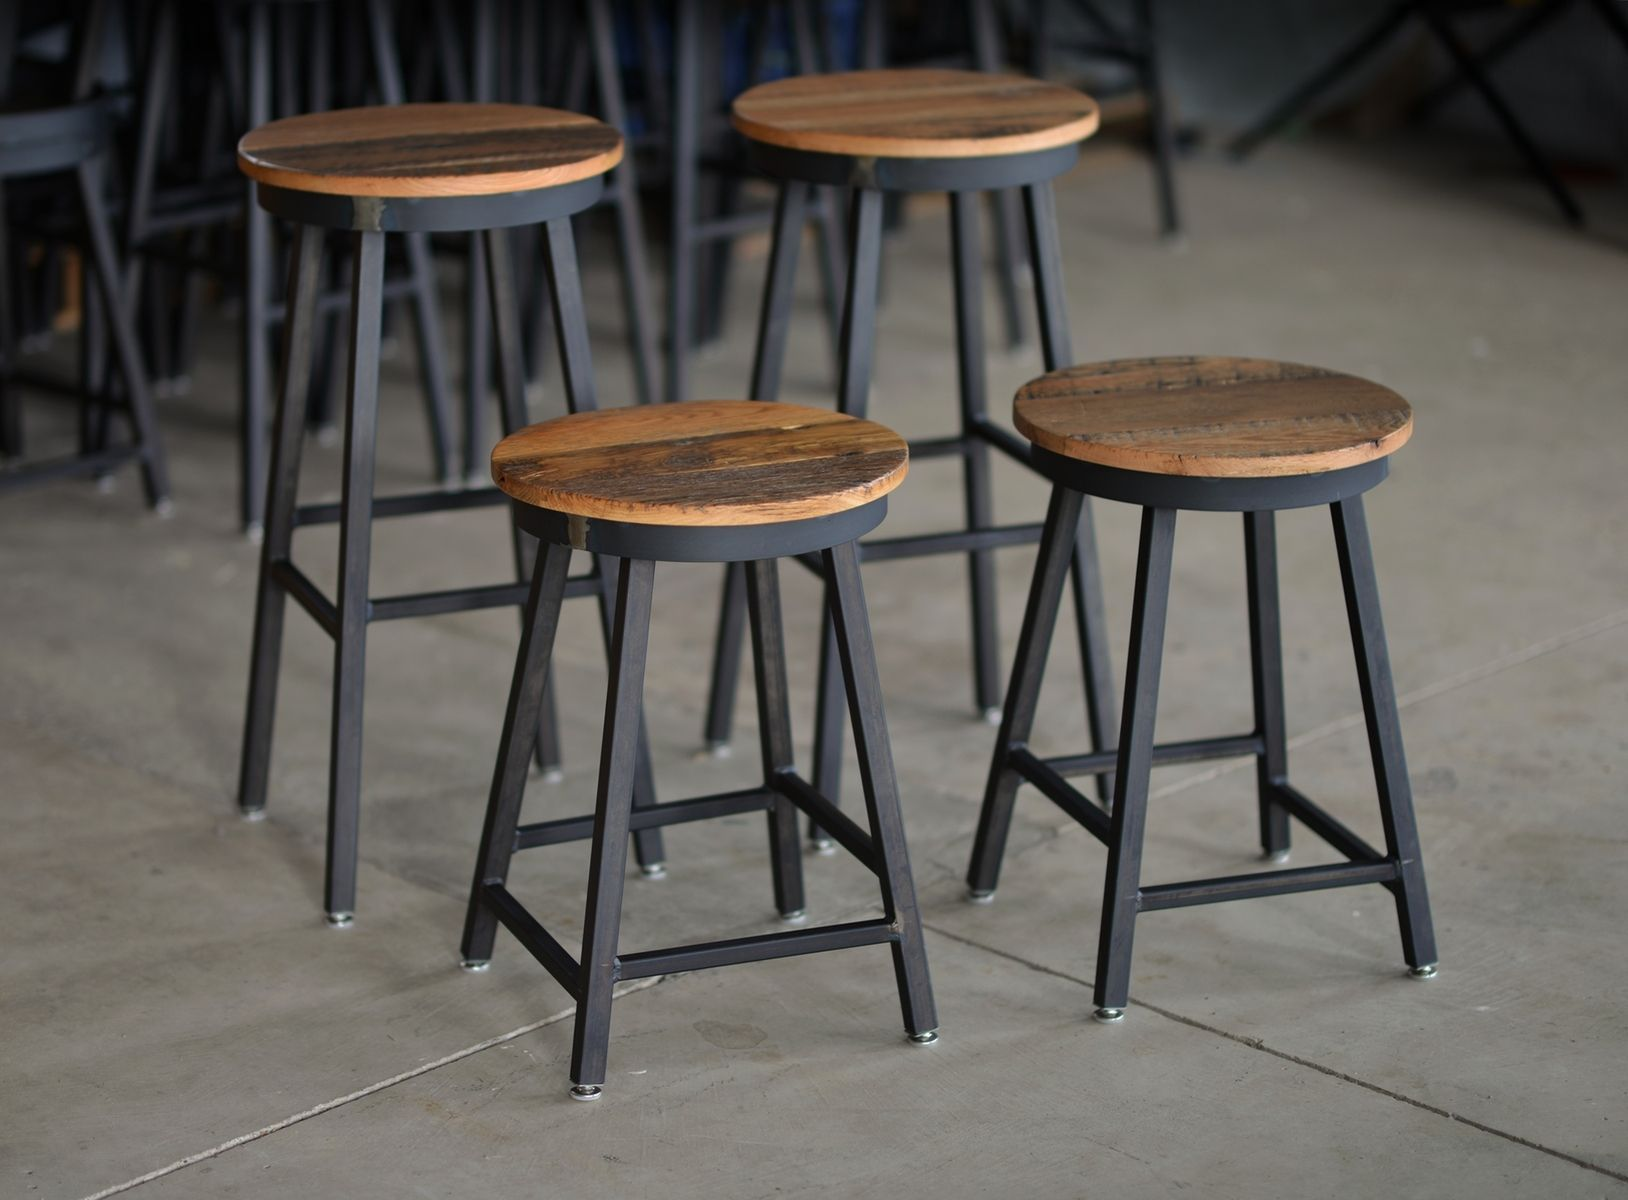 wooden tractor seat bar stools. Handmade Wooden Bar Stools - Furniture Has Been Connected To Style And Elegance Using Wood Is Not Always A Simp Tractor Seat